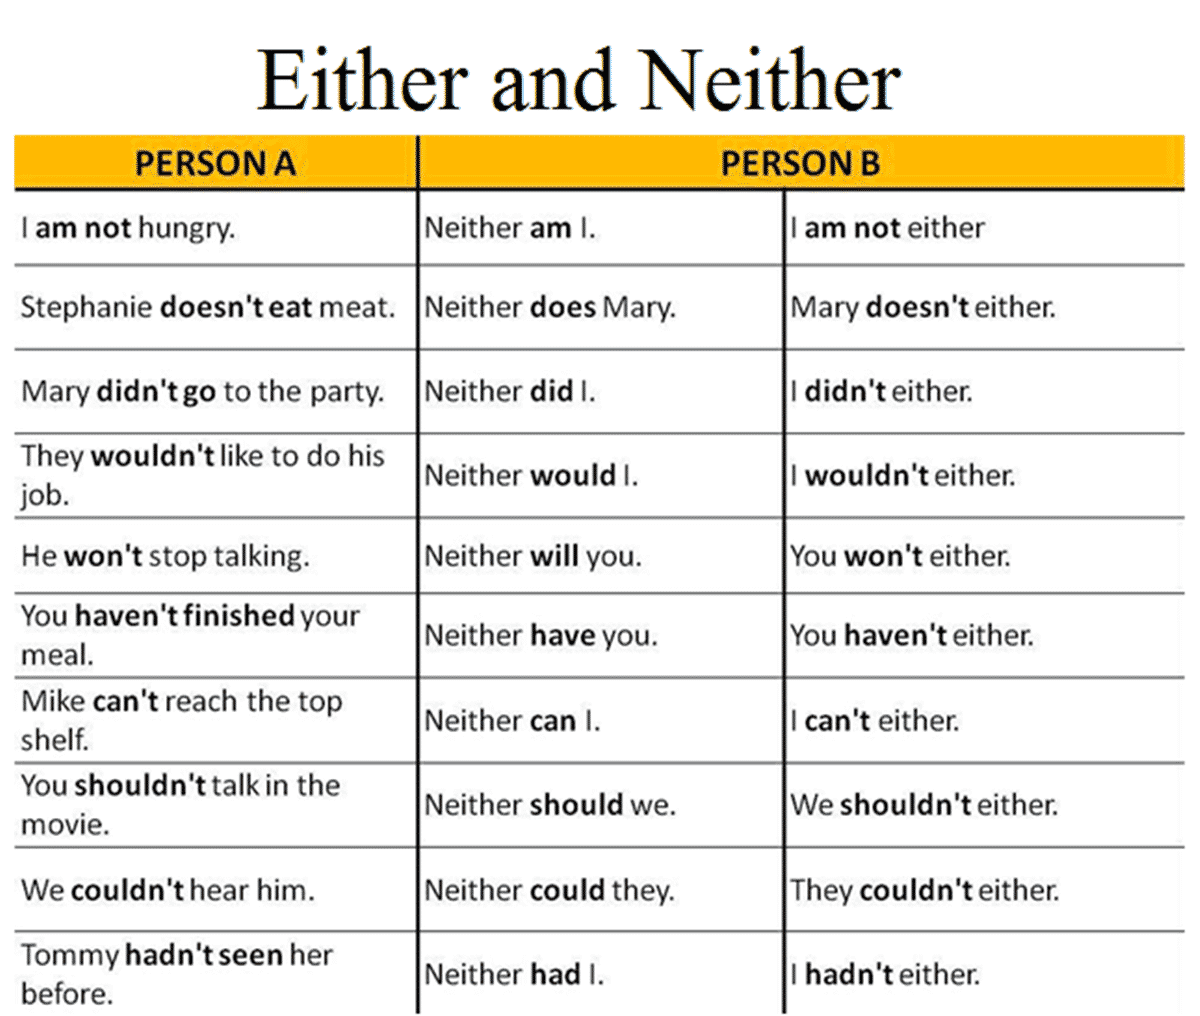 EITHER and NEITHER